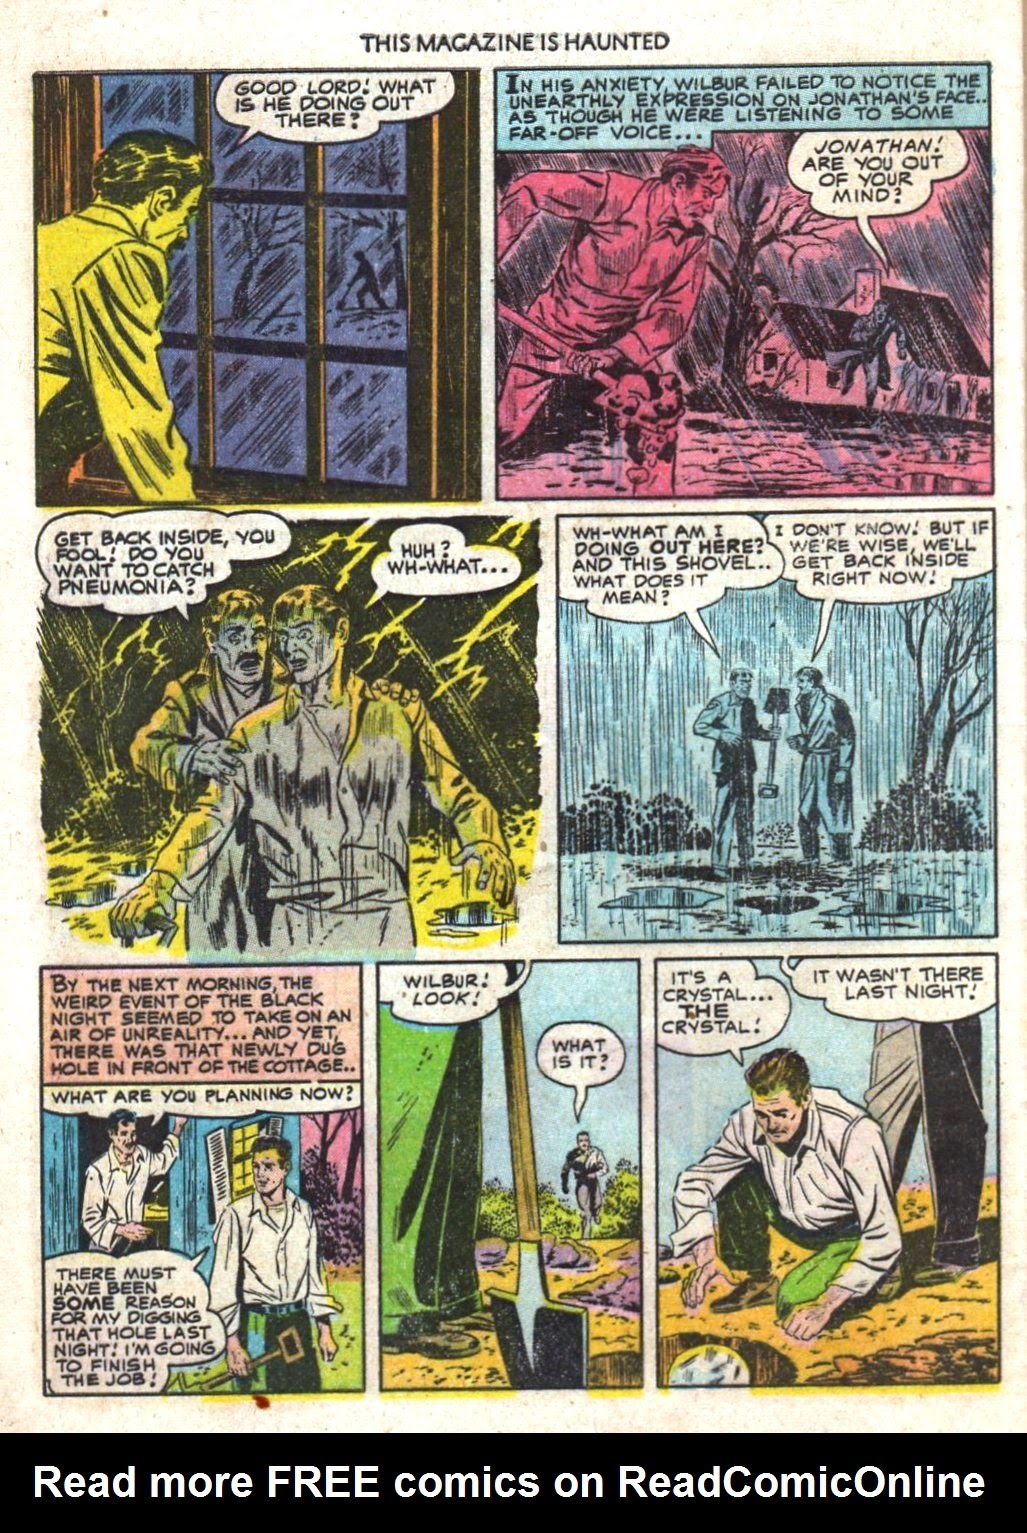 Read online This Magazine Is Haunted comic -  Issue #6 - 28